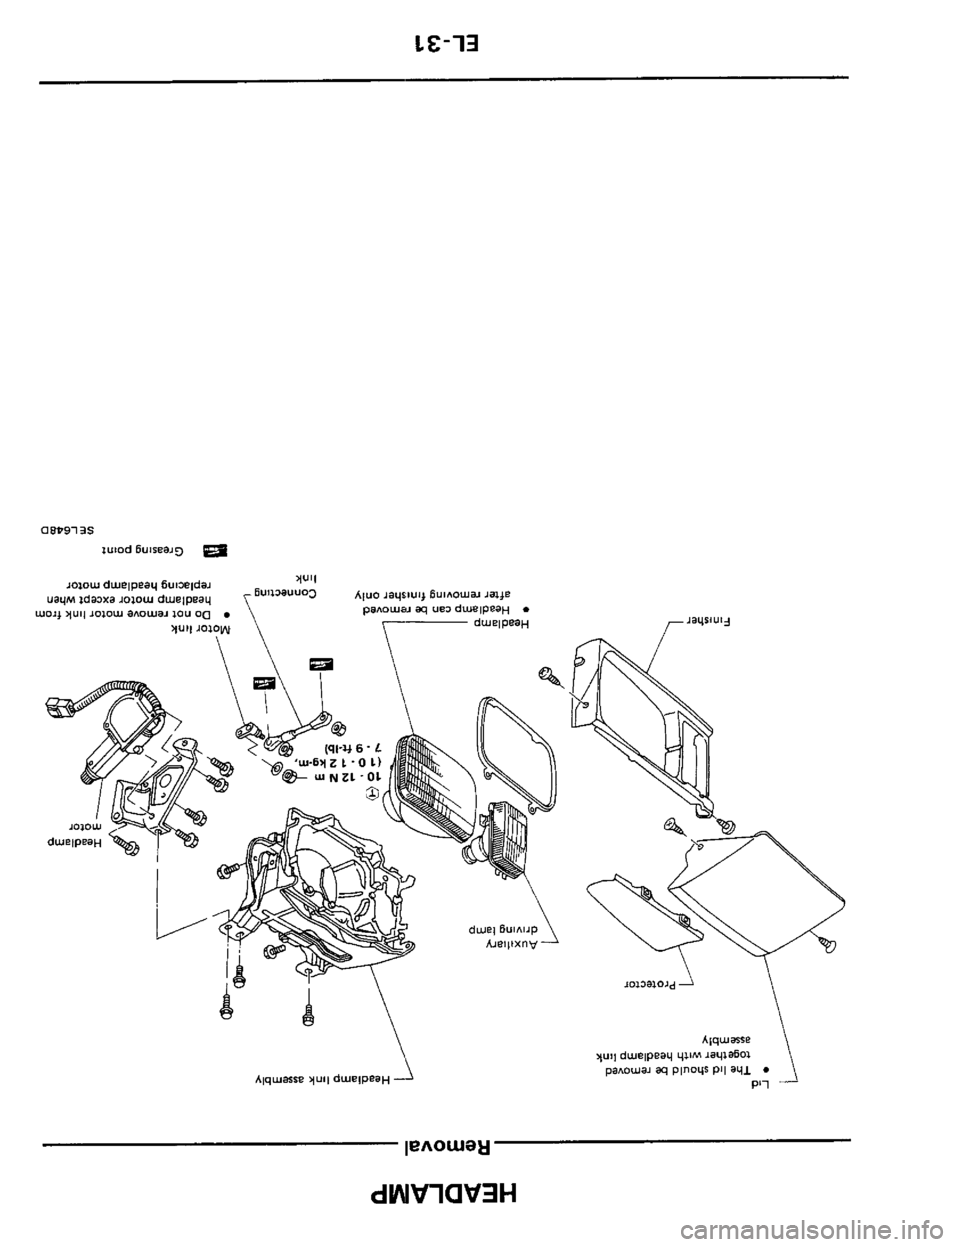 yamaha fzr 600 repair manual